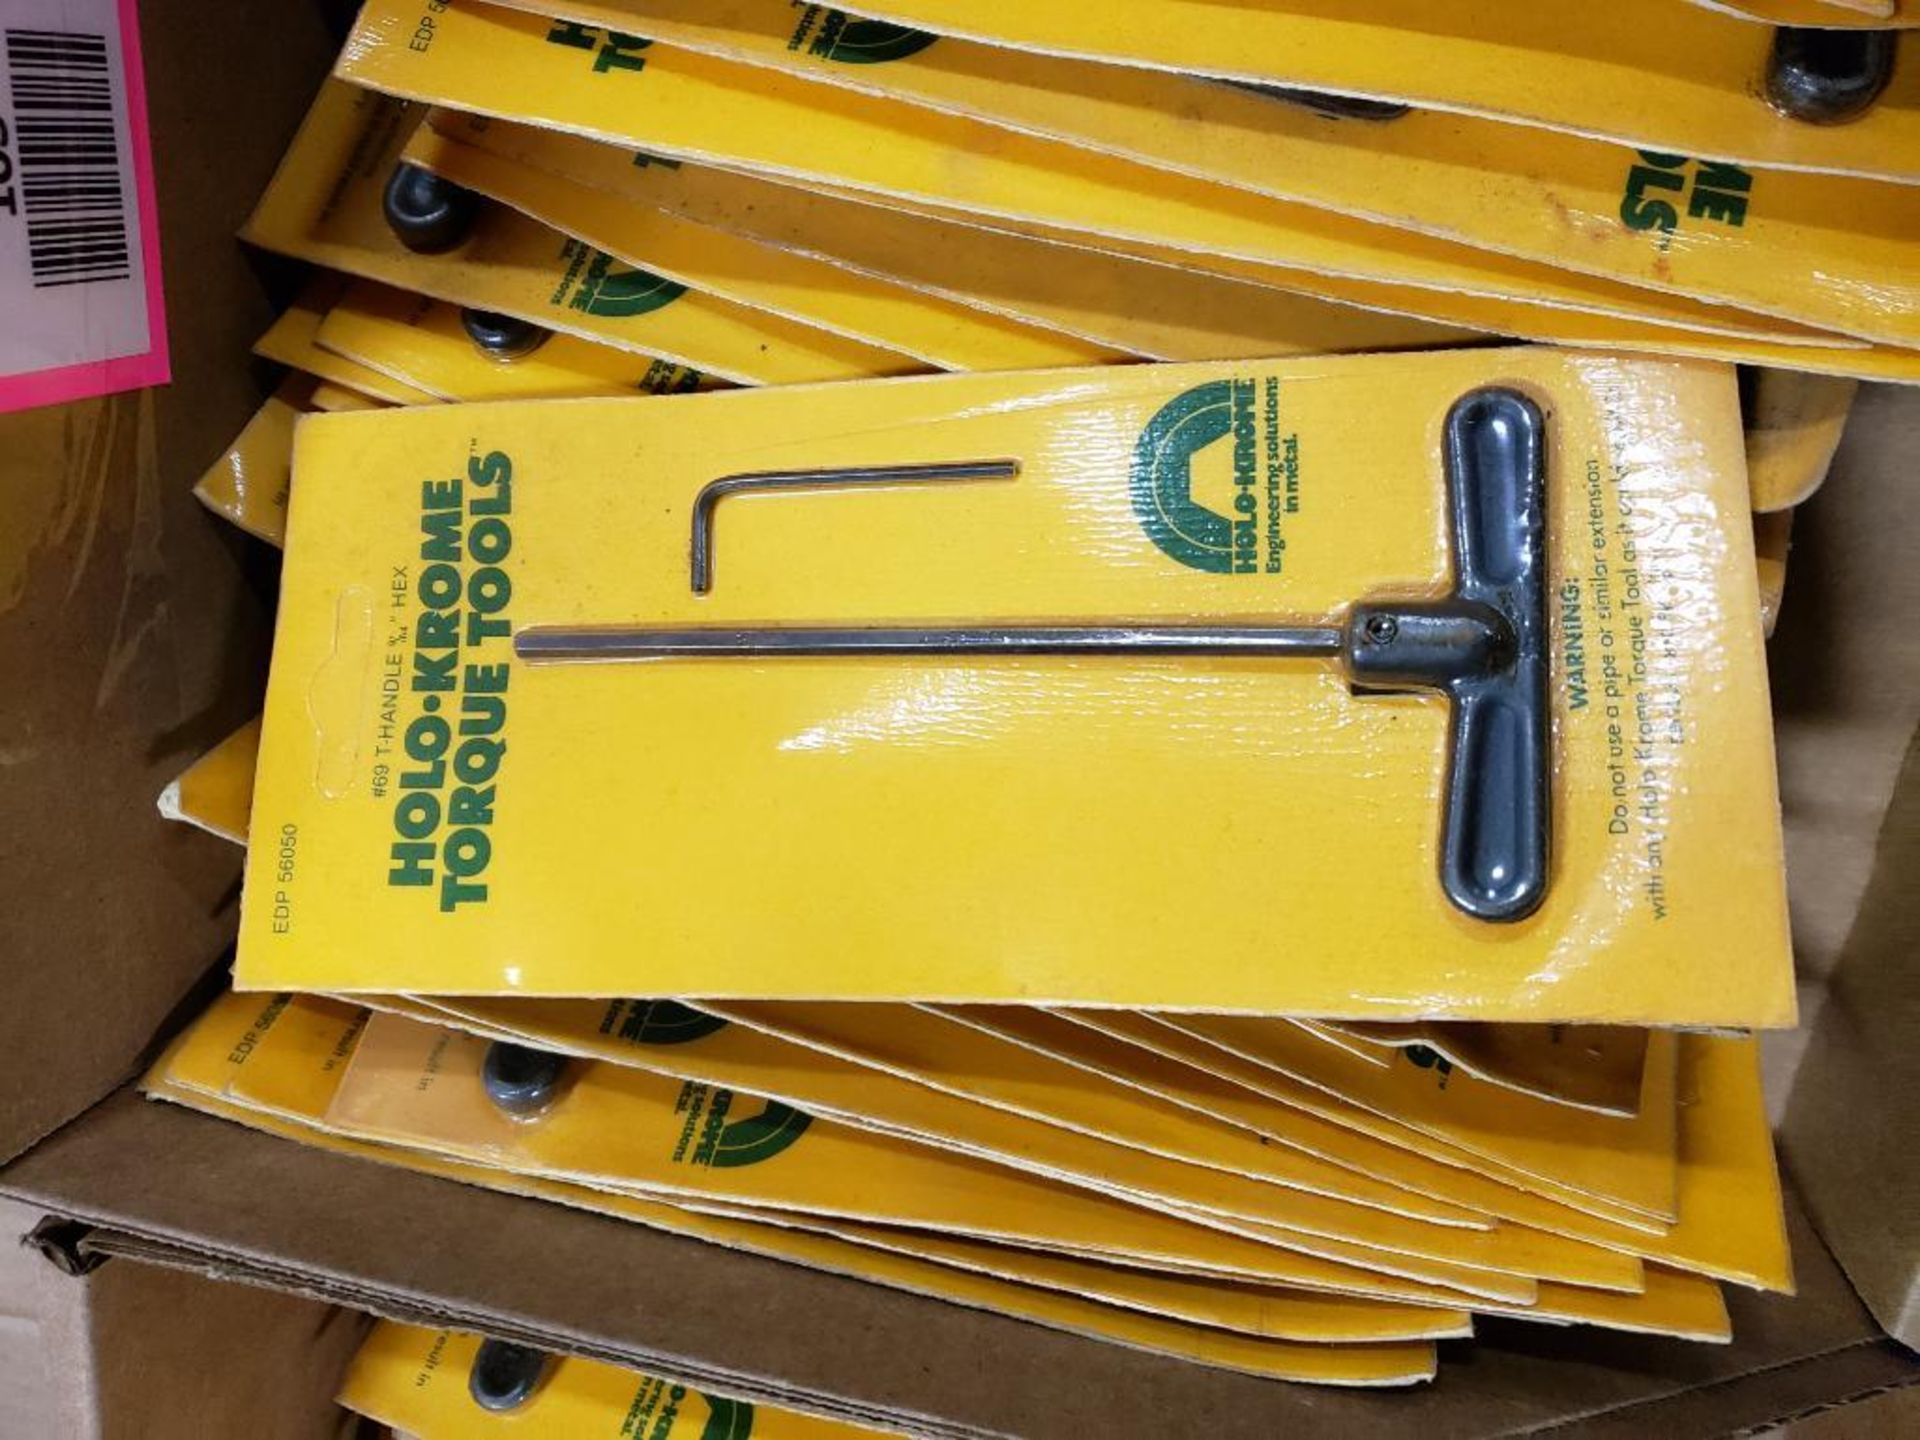 Large Qty of Holo-Krome allen wrenches. New. - Image 2 of 2